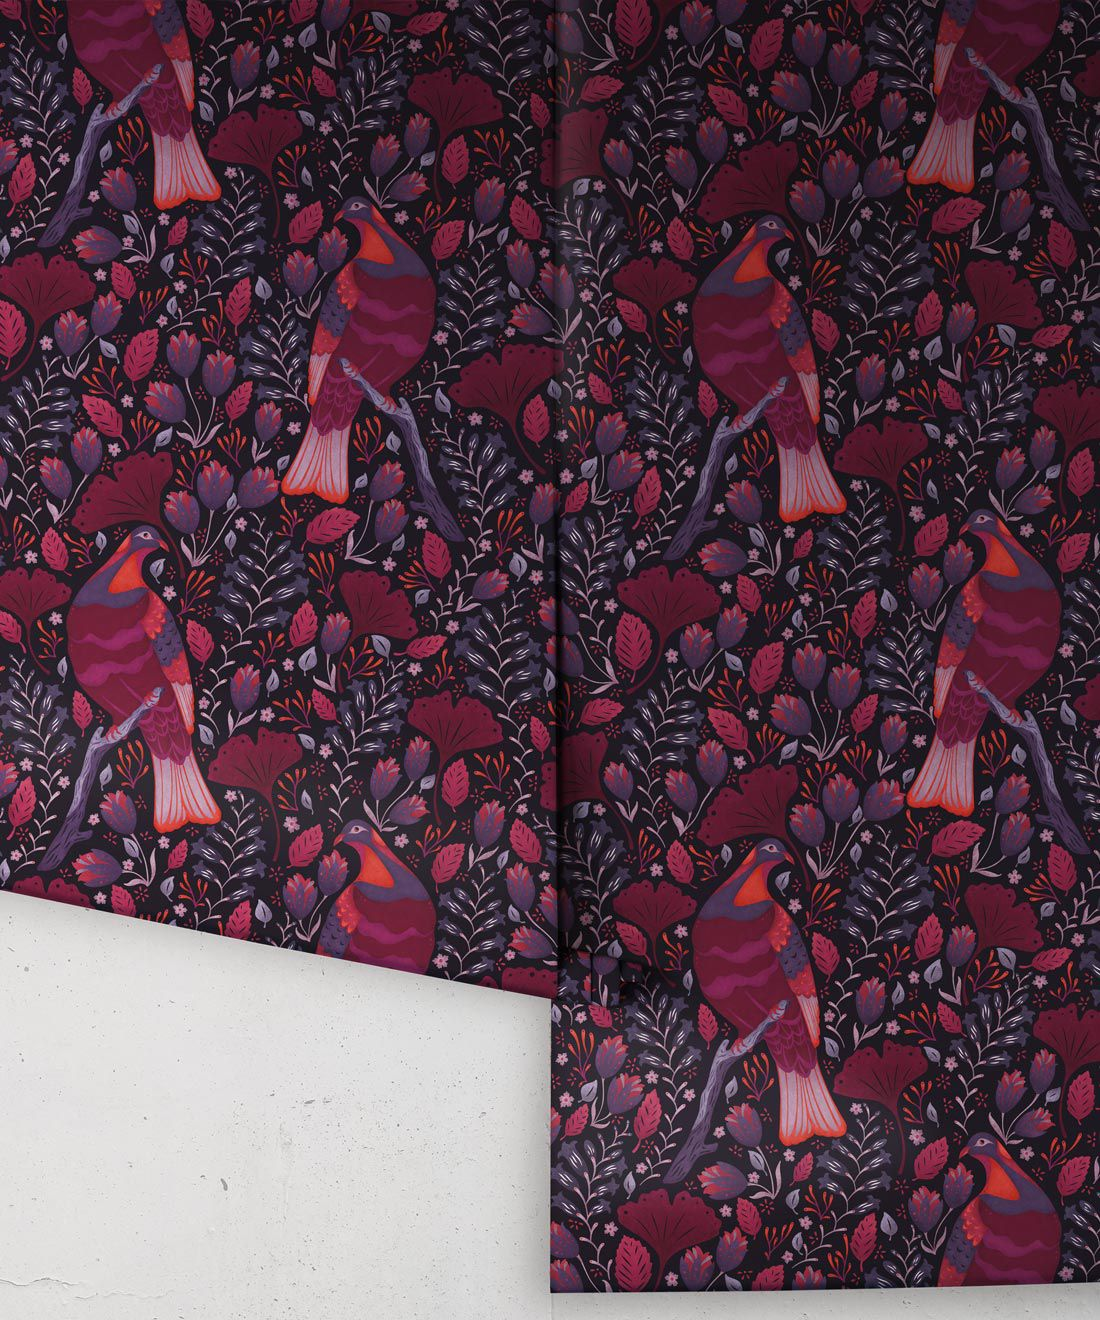 Kereru Wallpaper • Wood Pigeon• Bird Wallpaper • Maroon Wallpaper Drops